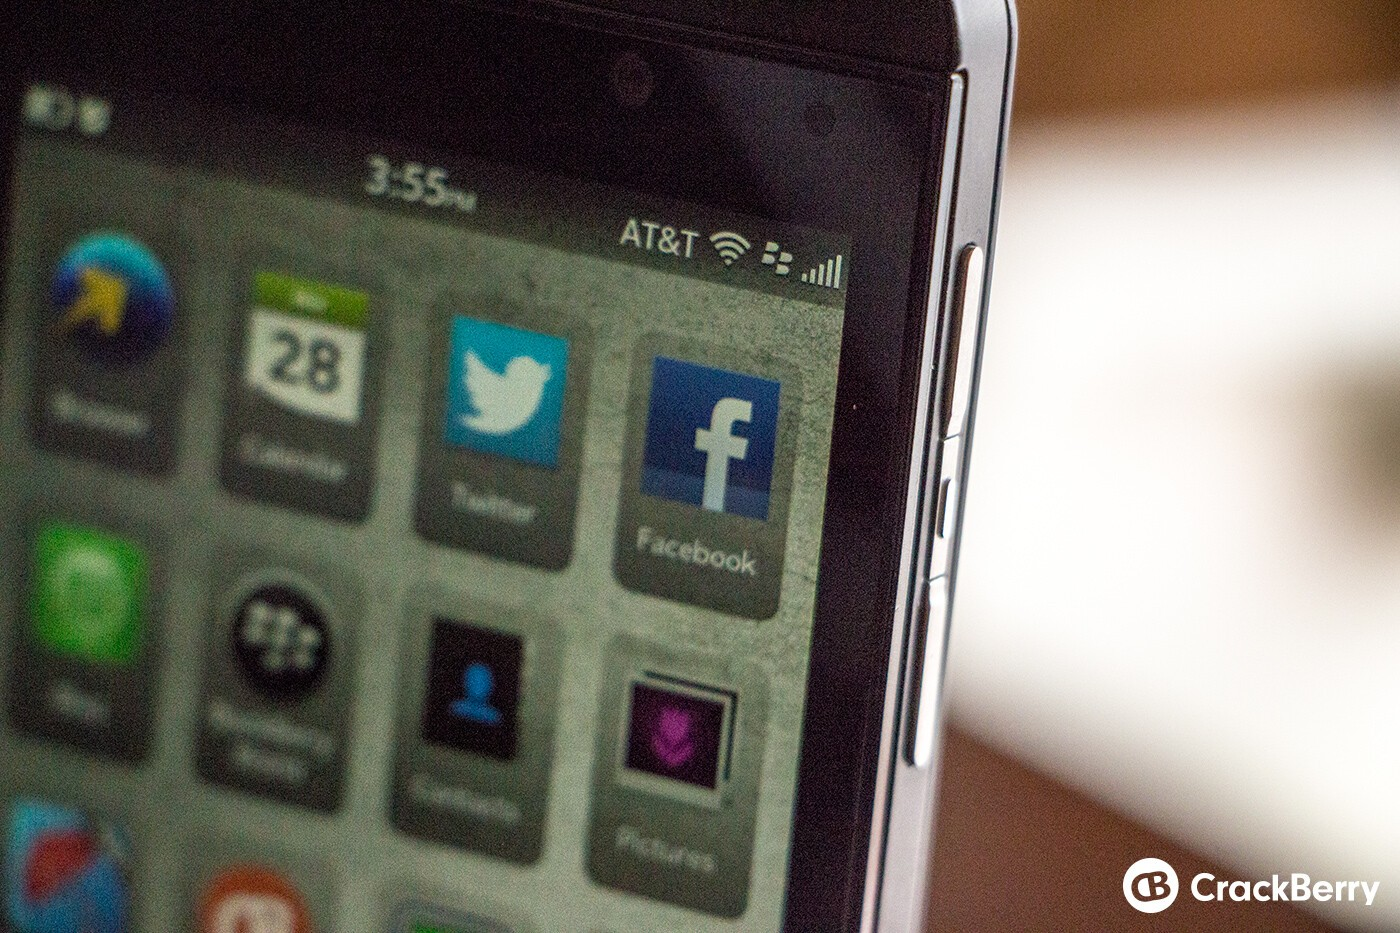 Facebook for BlackBerry 10 updated in the BlackBerry Beta Zone